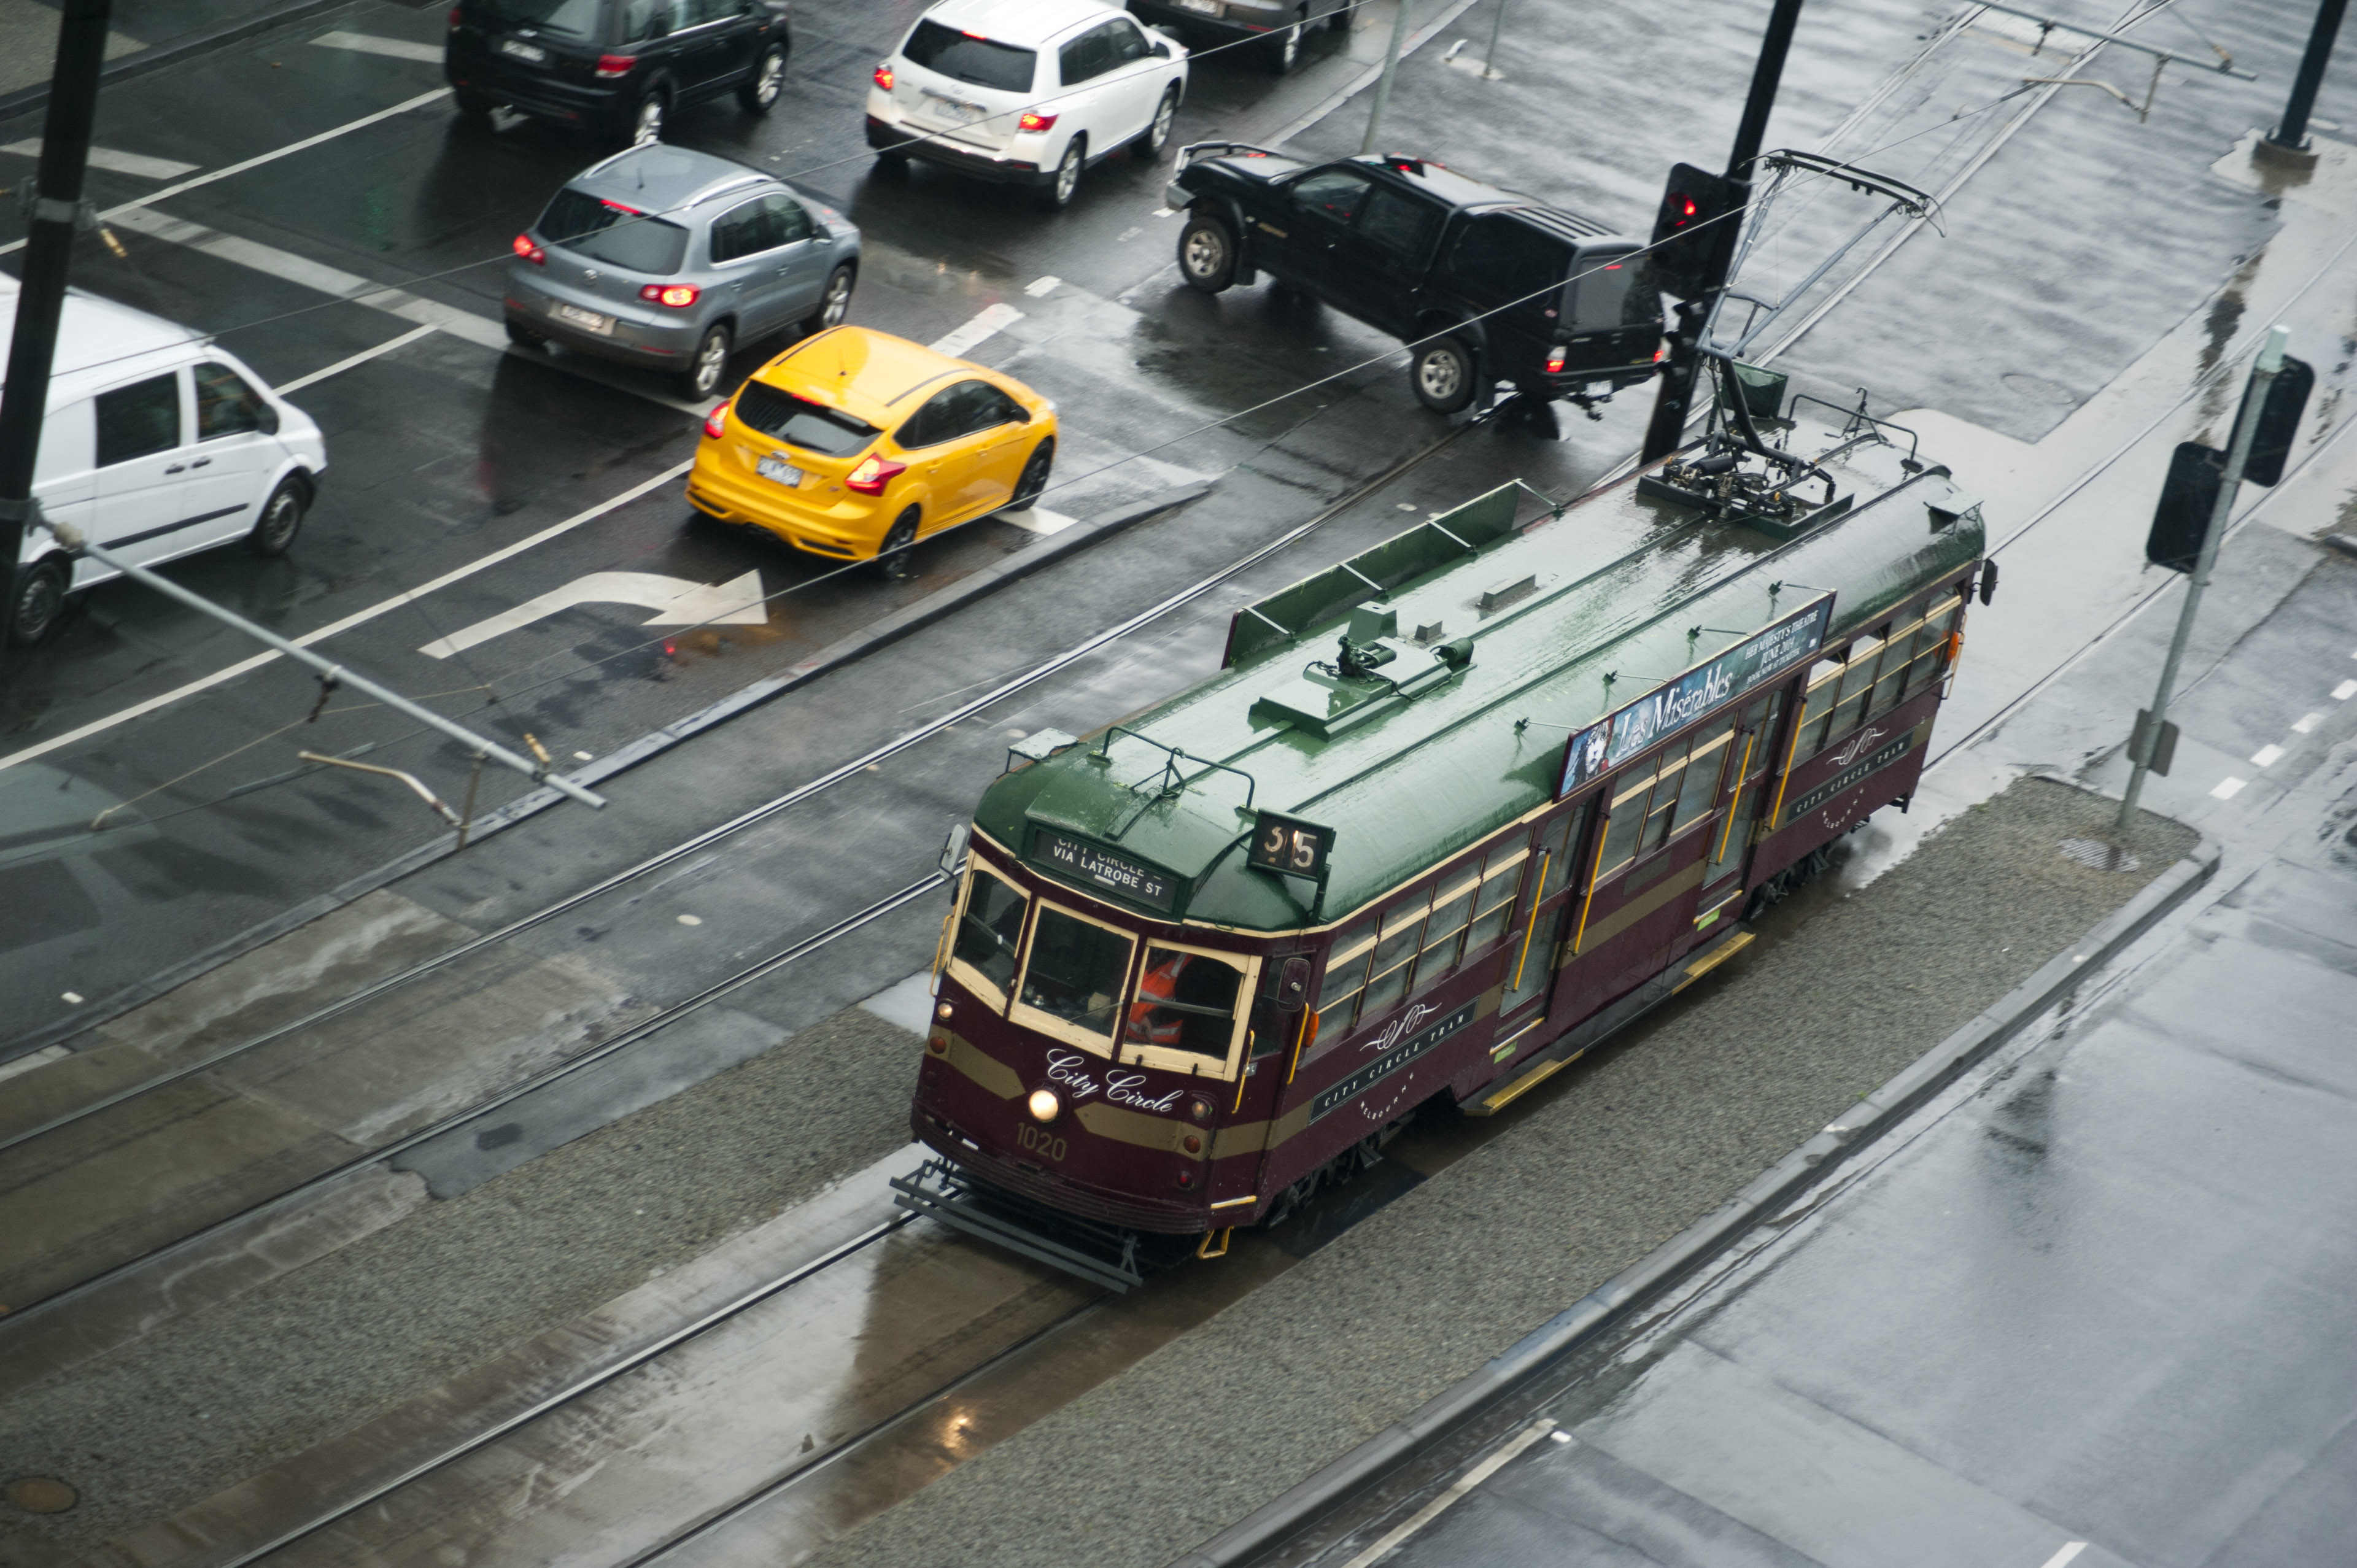 Aerial view of street tram and traffic on rainy day